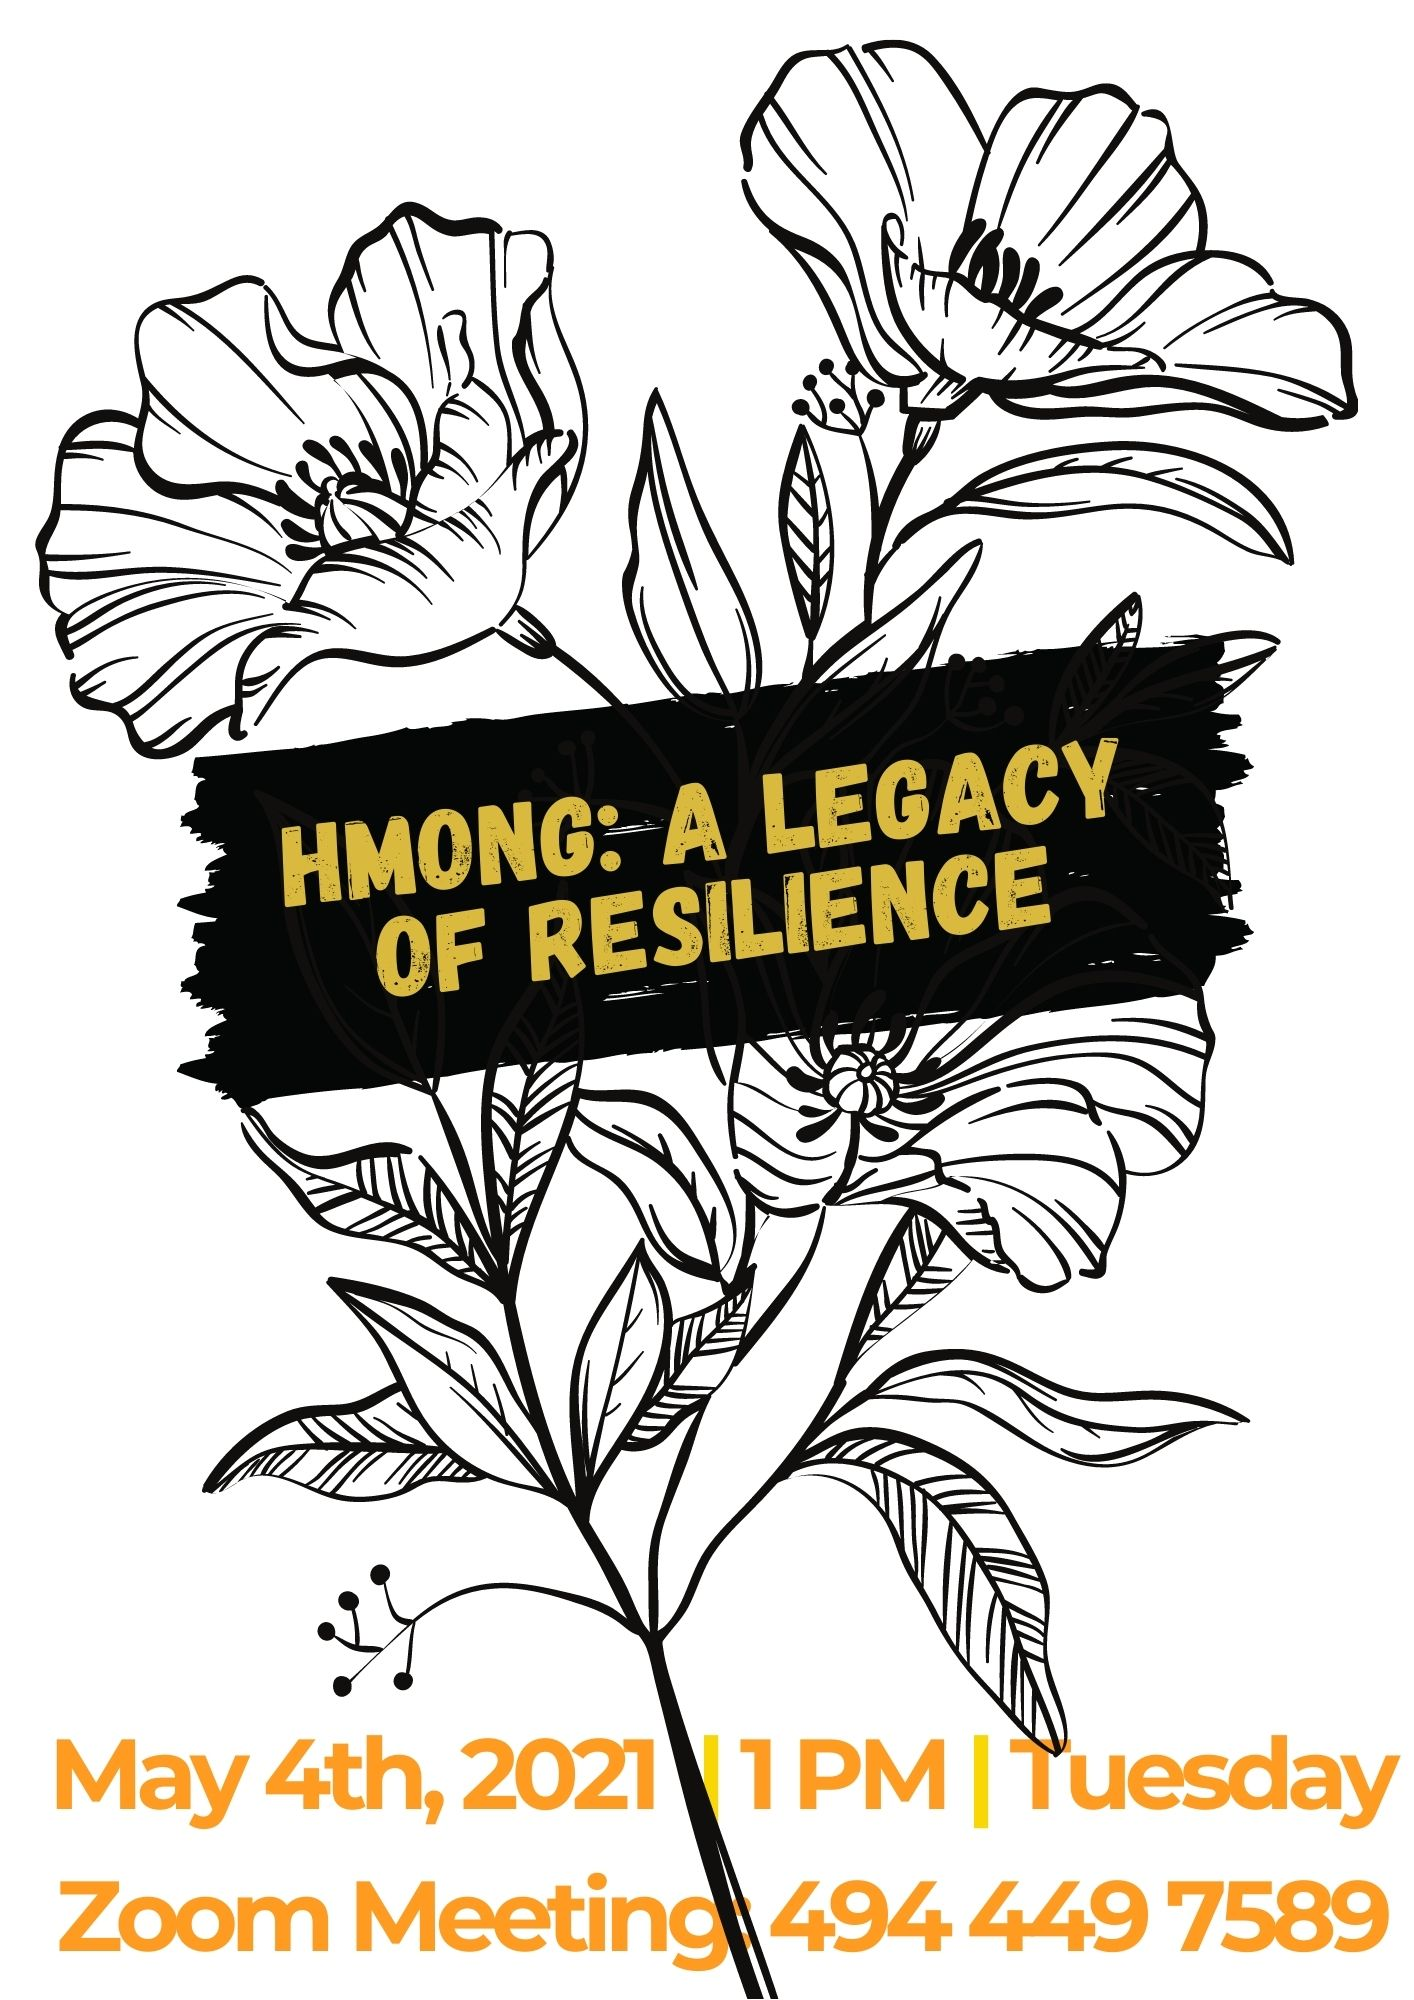 Hmong: A Legacy Of Resilience